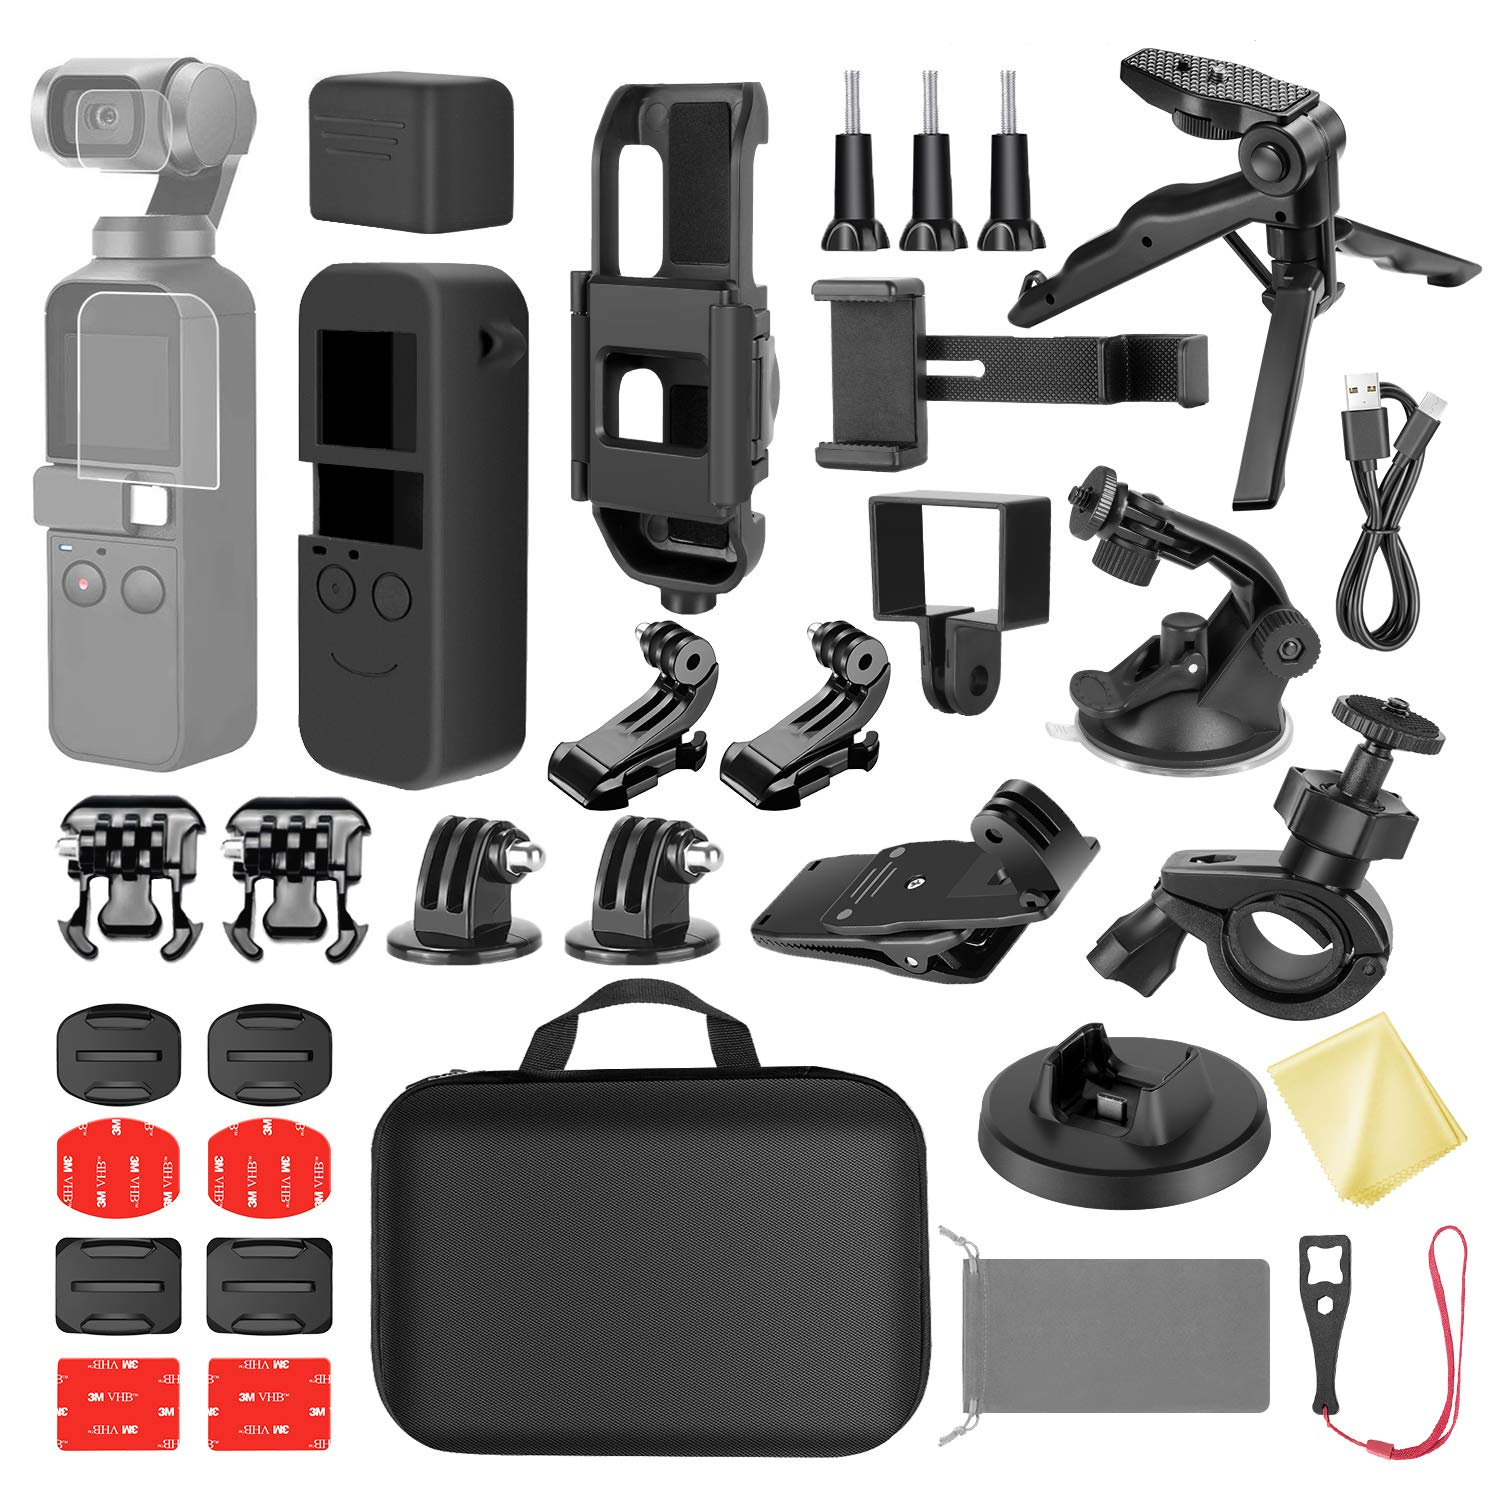 Neewer 33-in-1 Expansion Kit Compatible with DJI OSMO Pocket Action Camera Mounts, Accessory Bundle Kit with Carry Case/Phone Holder/Charging Base/Tripod/Car Suction Cup/Bicycle Bracket and More by Neewer